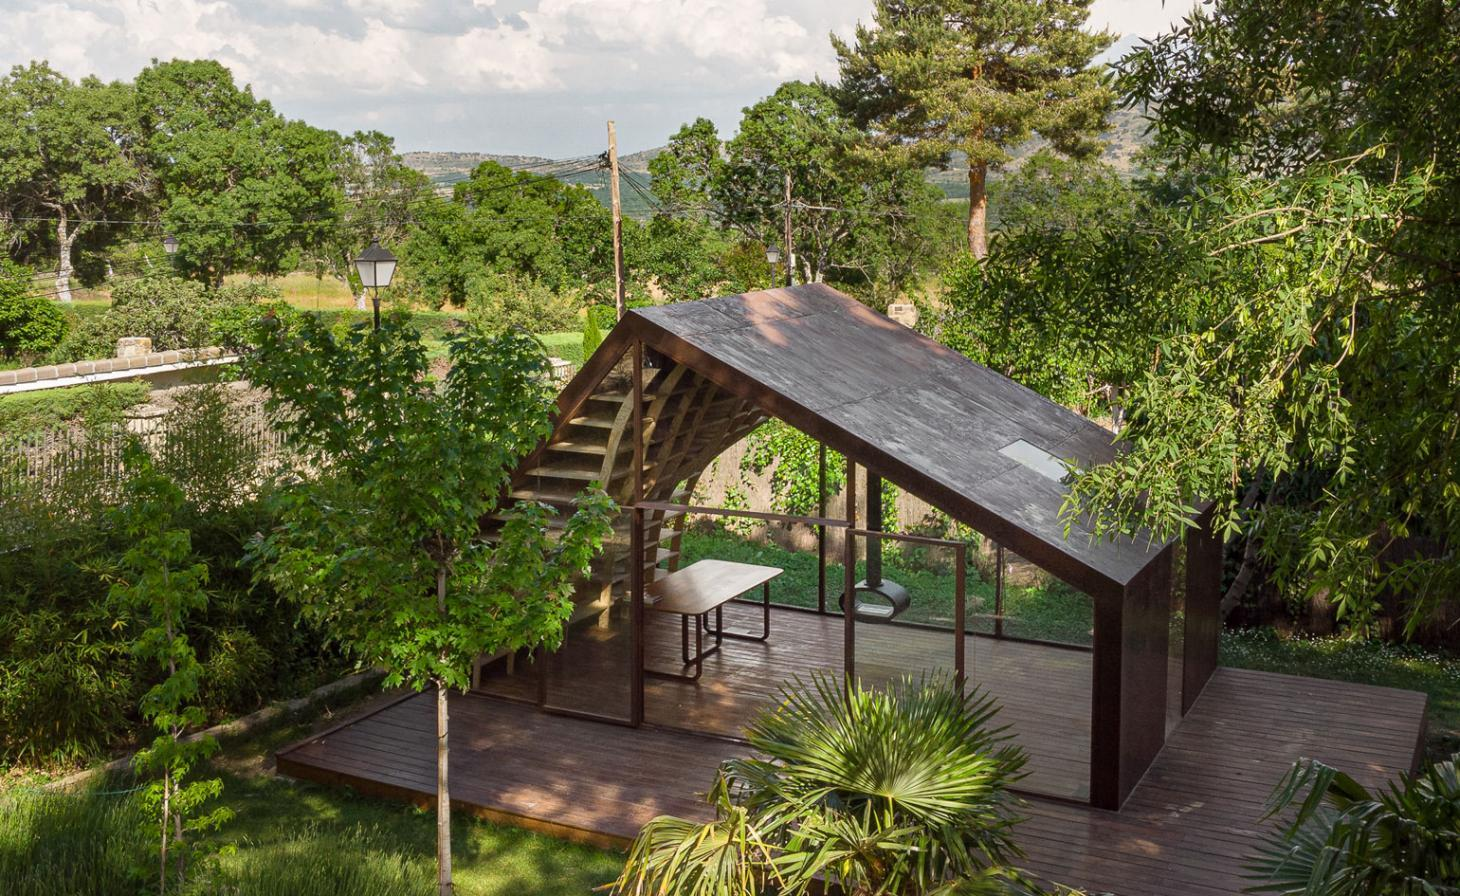 writer's cabin made of undulating wood outside Madrid